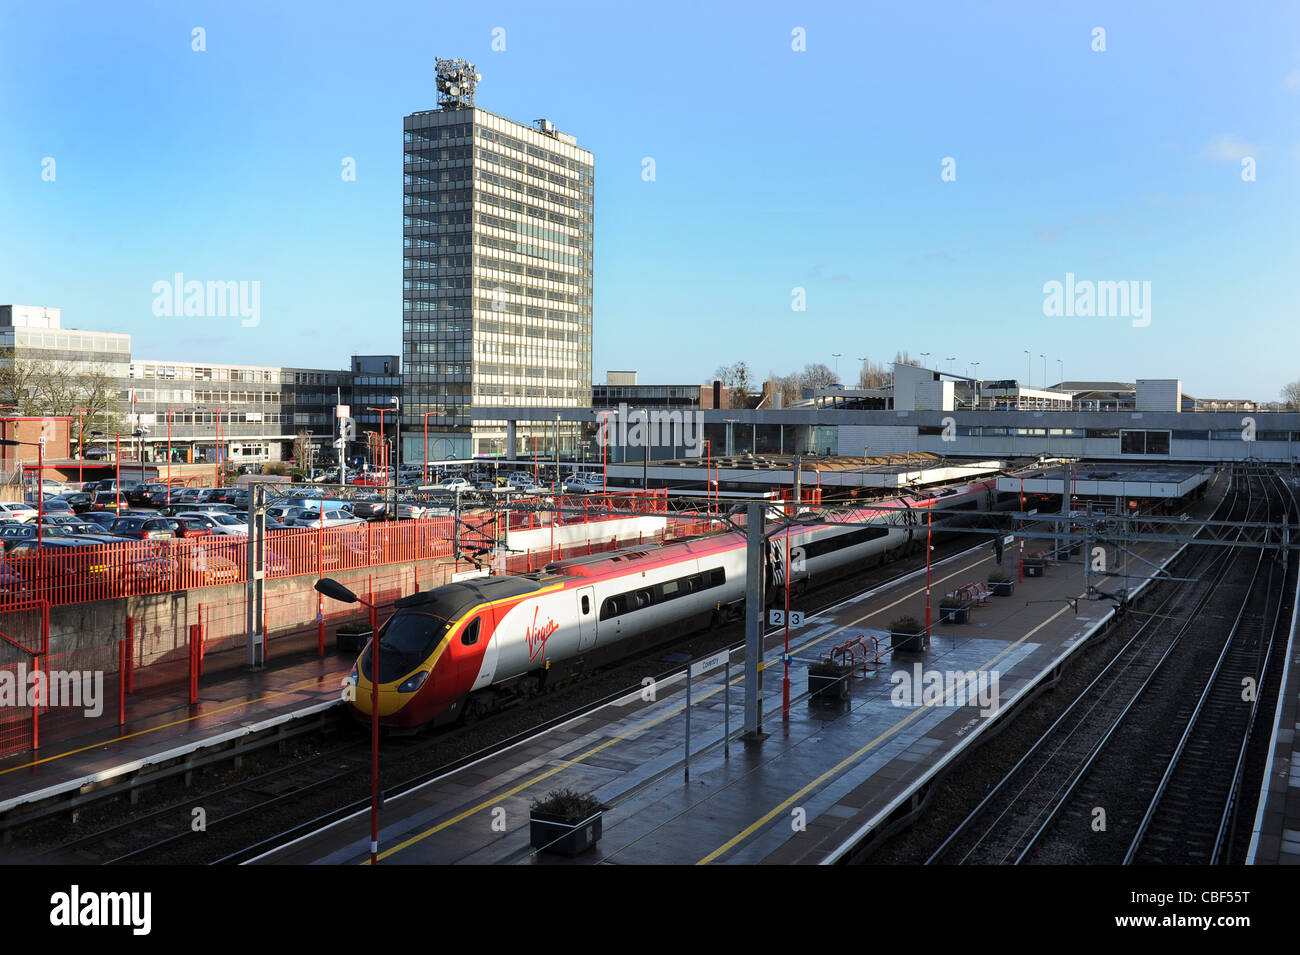 Coventry Railway Station England Uk - Stock Image